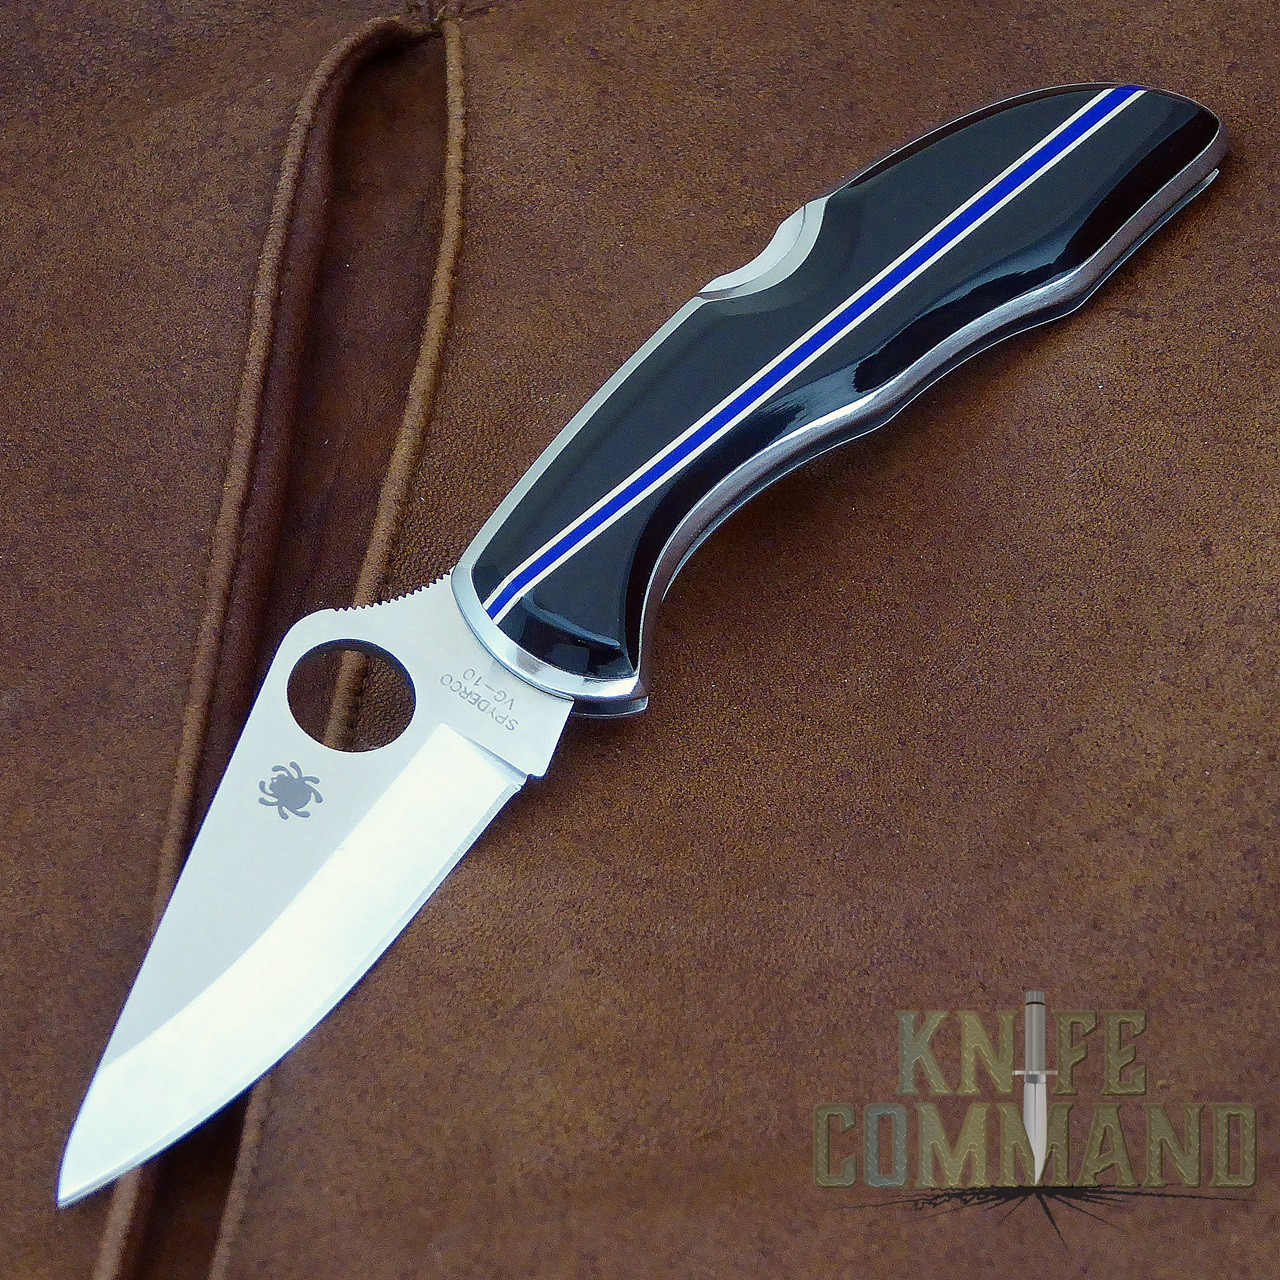 Spyderco Delica Santa Fe Stoneworks Blue Line Special Knife.  A Knife Command Exclusive.